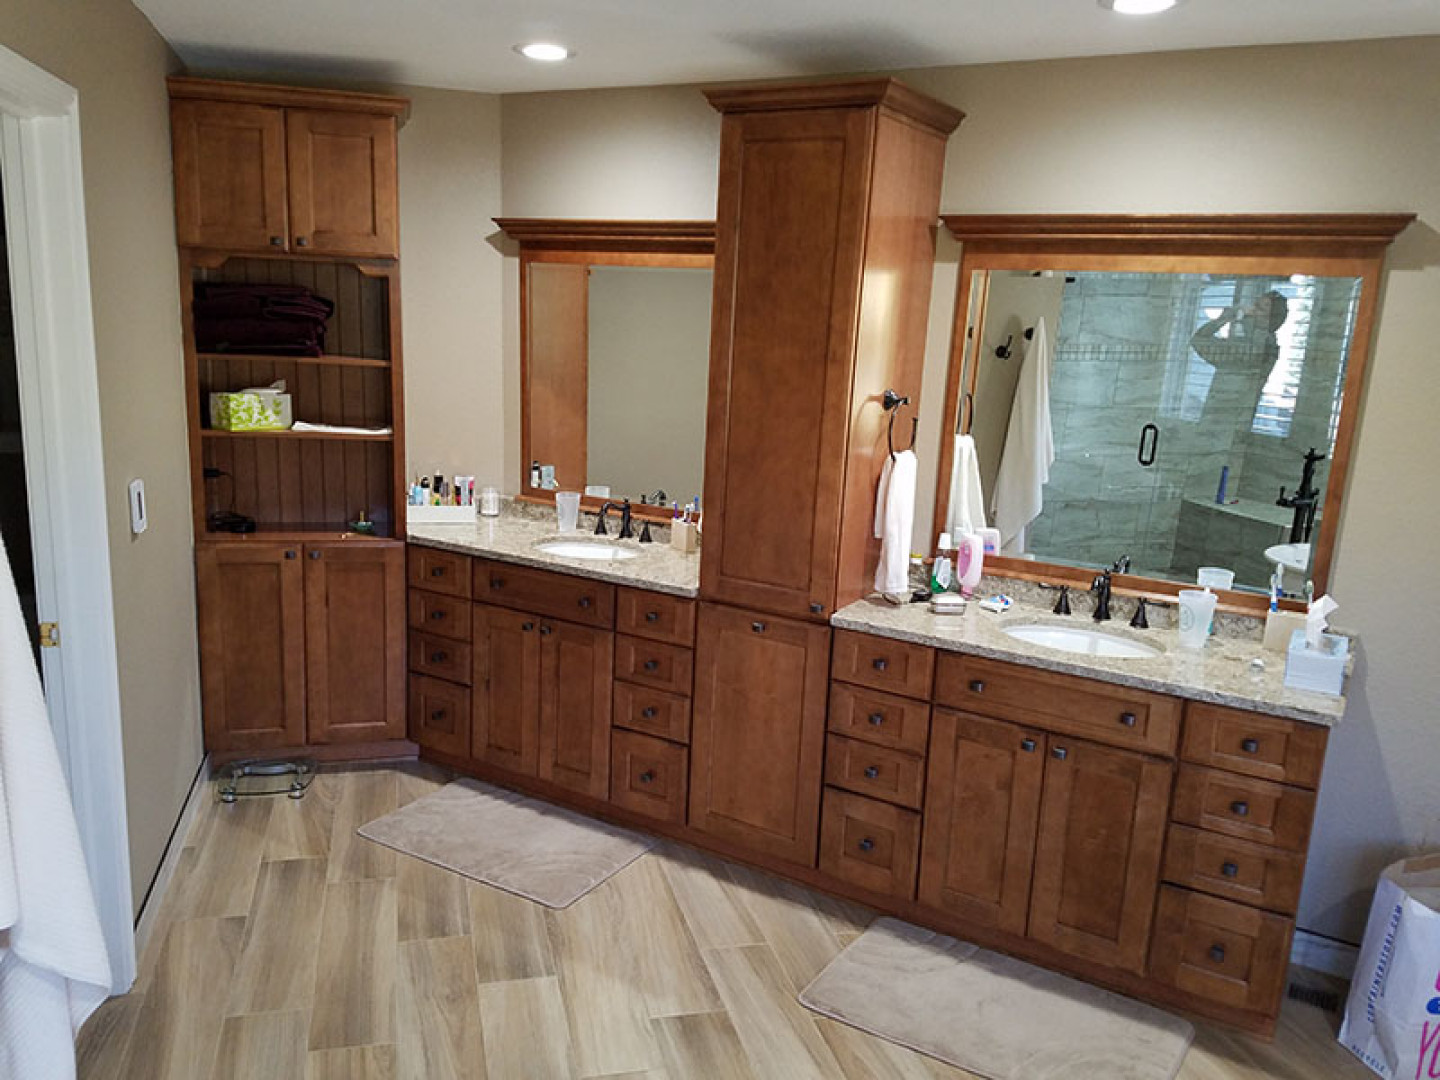 Think of us when you need bathroom remodeling services